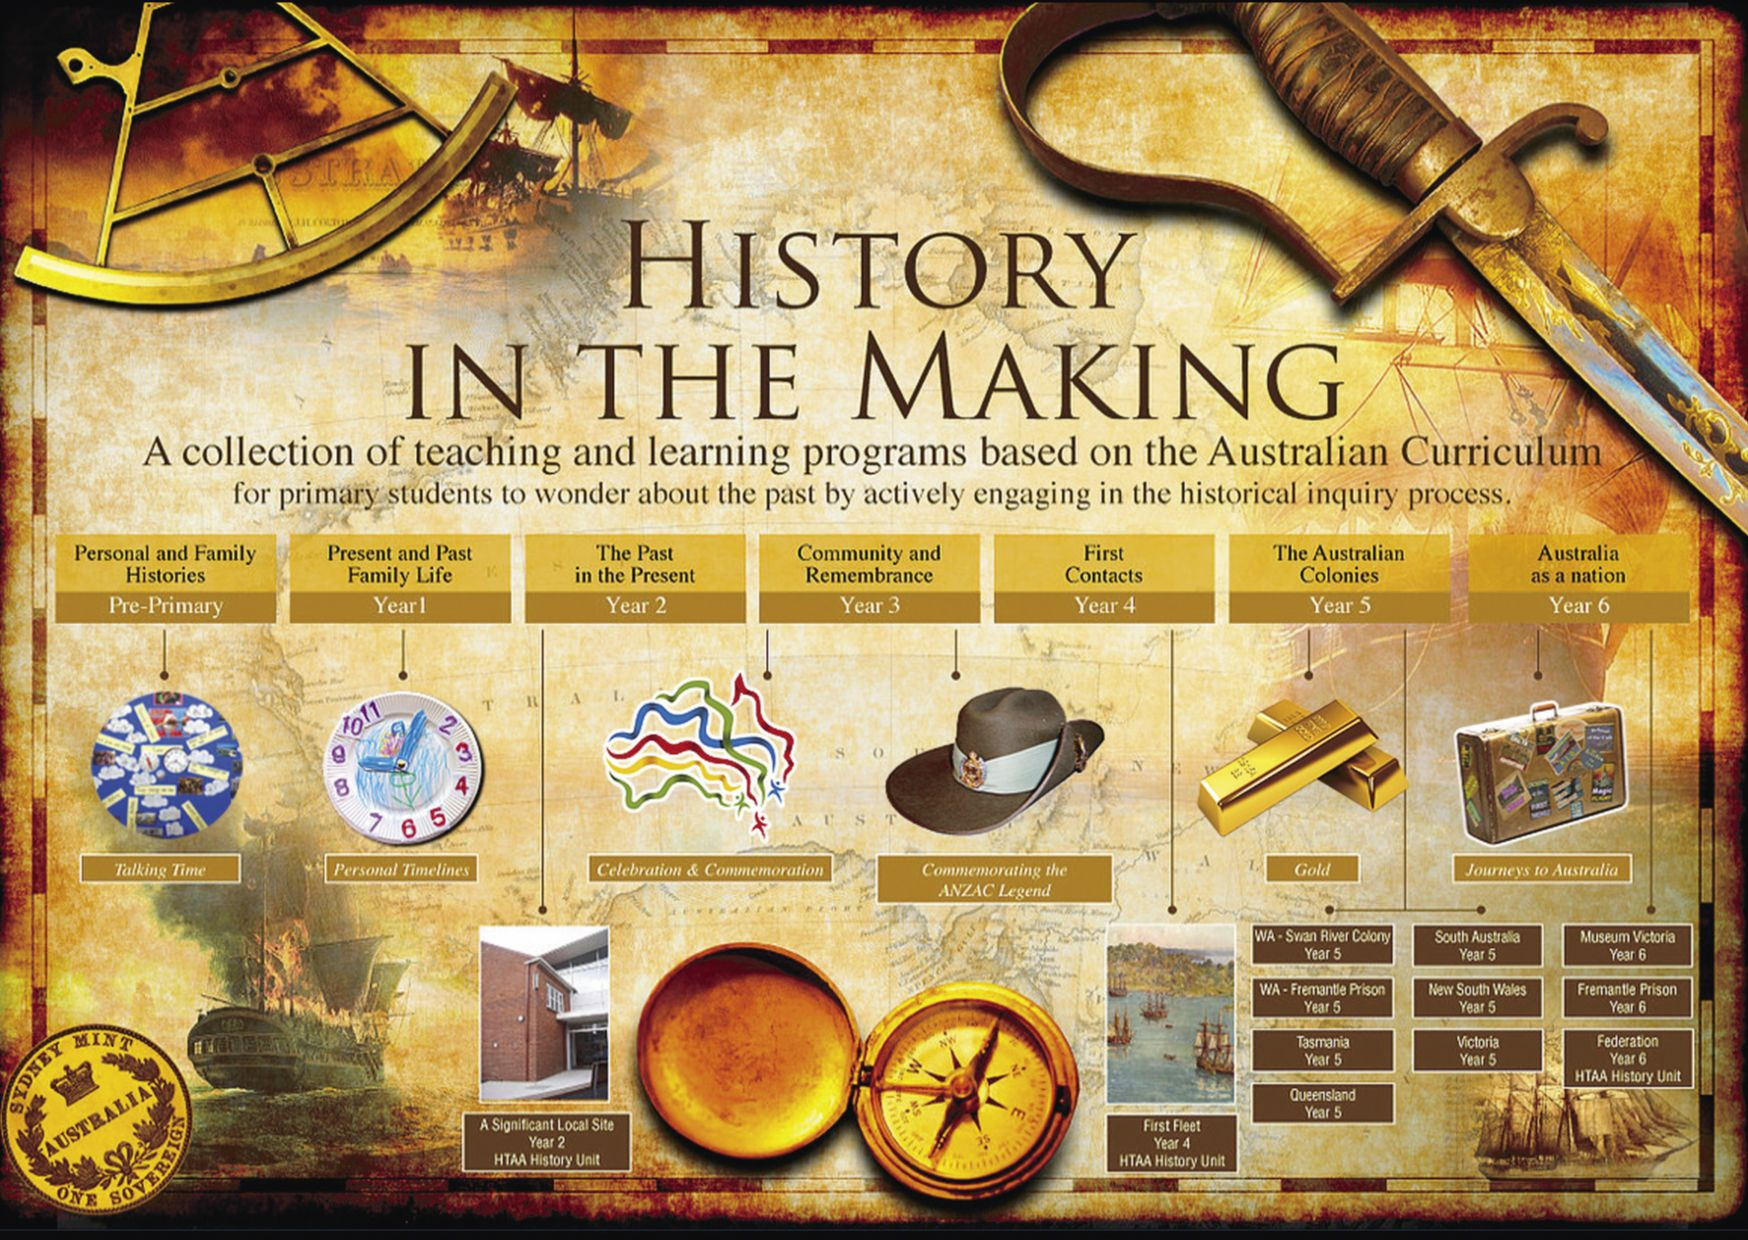 ... Programs based on the Australian Curriculum for primary students to  wonder about the past by actively engaging in the historical inquiry  process.